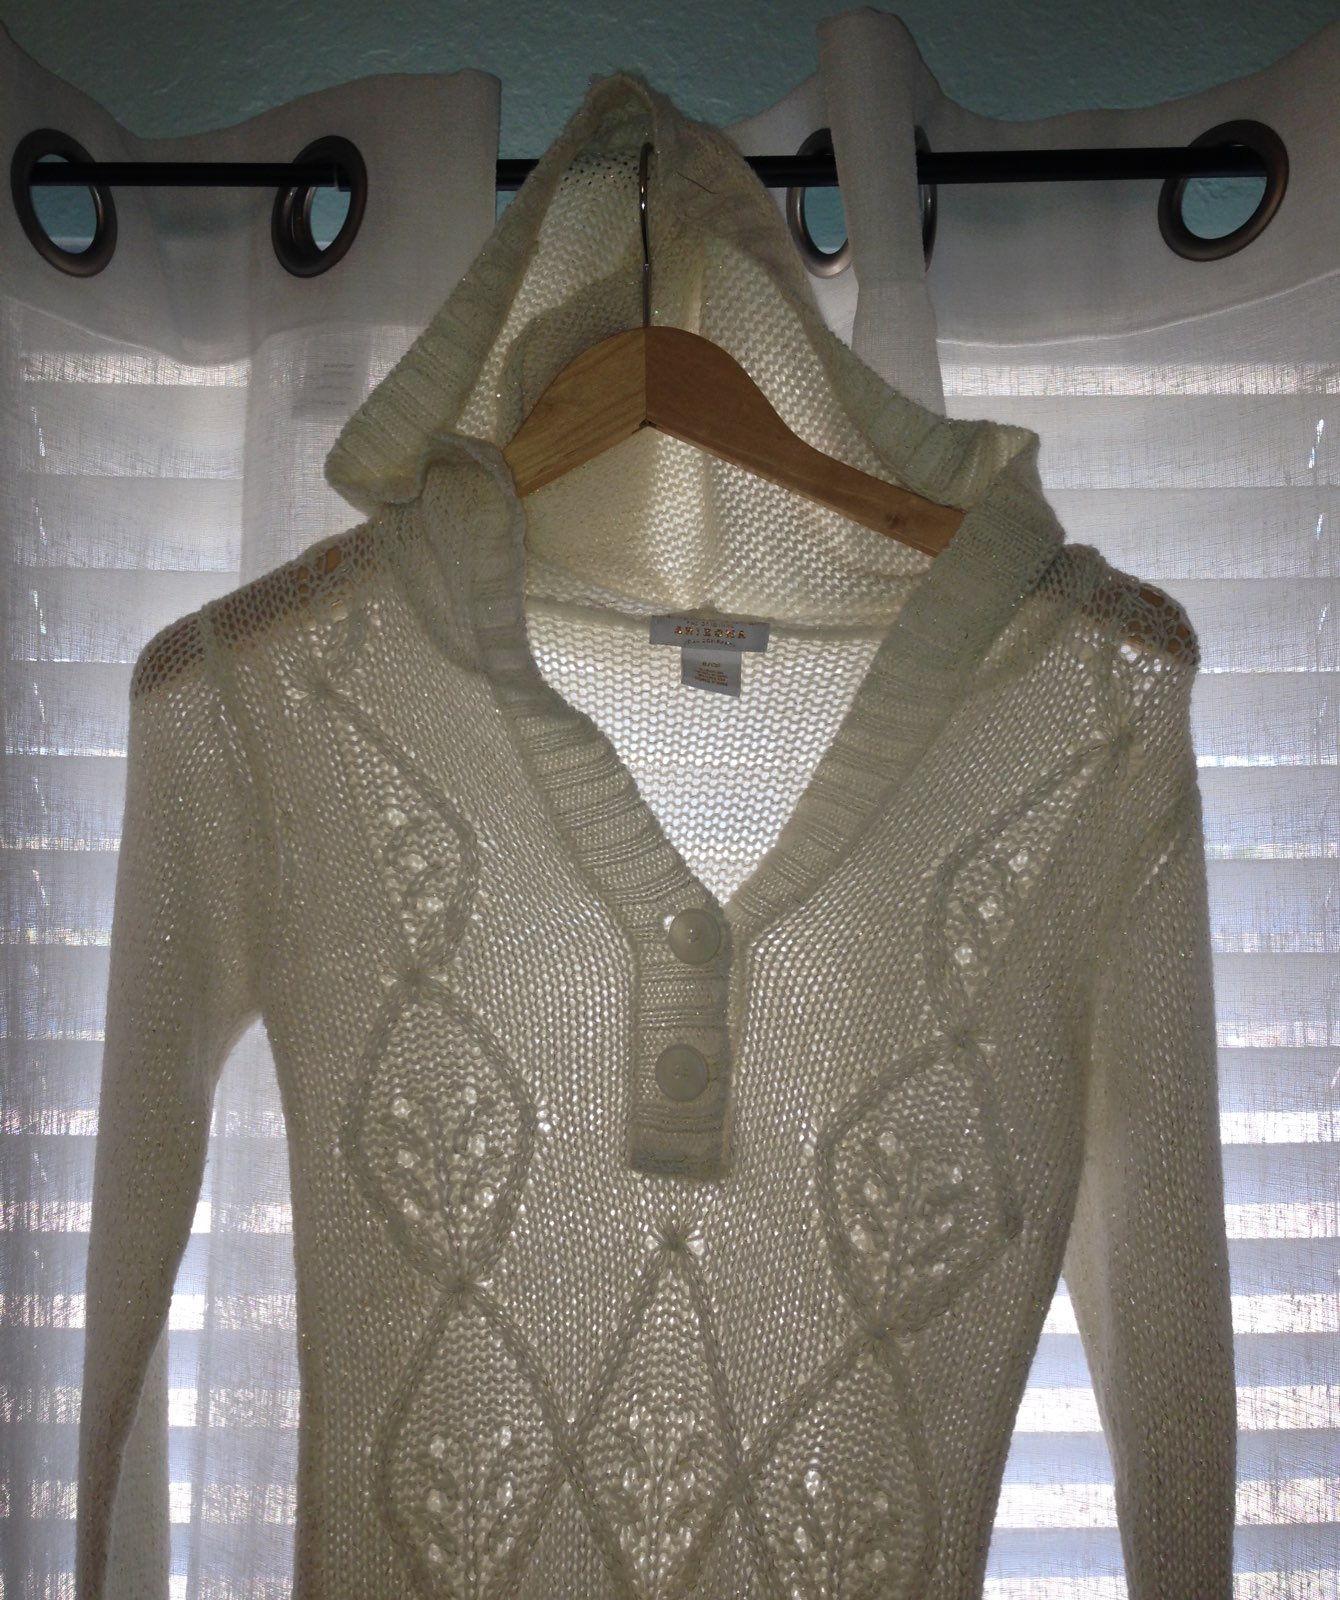 Cream Hooded Sweater Small - Mercari: BUY & SELL THINGS YOU LOVE